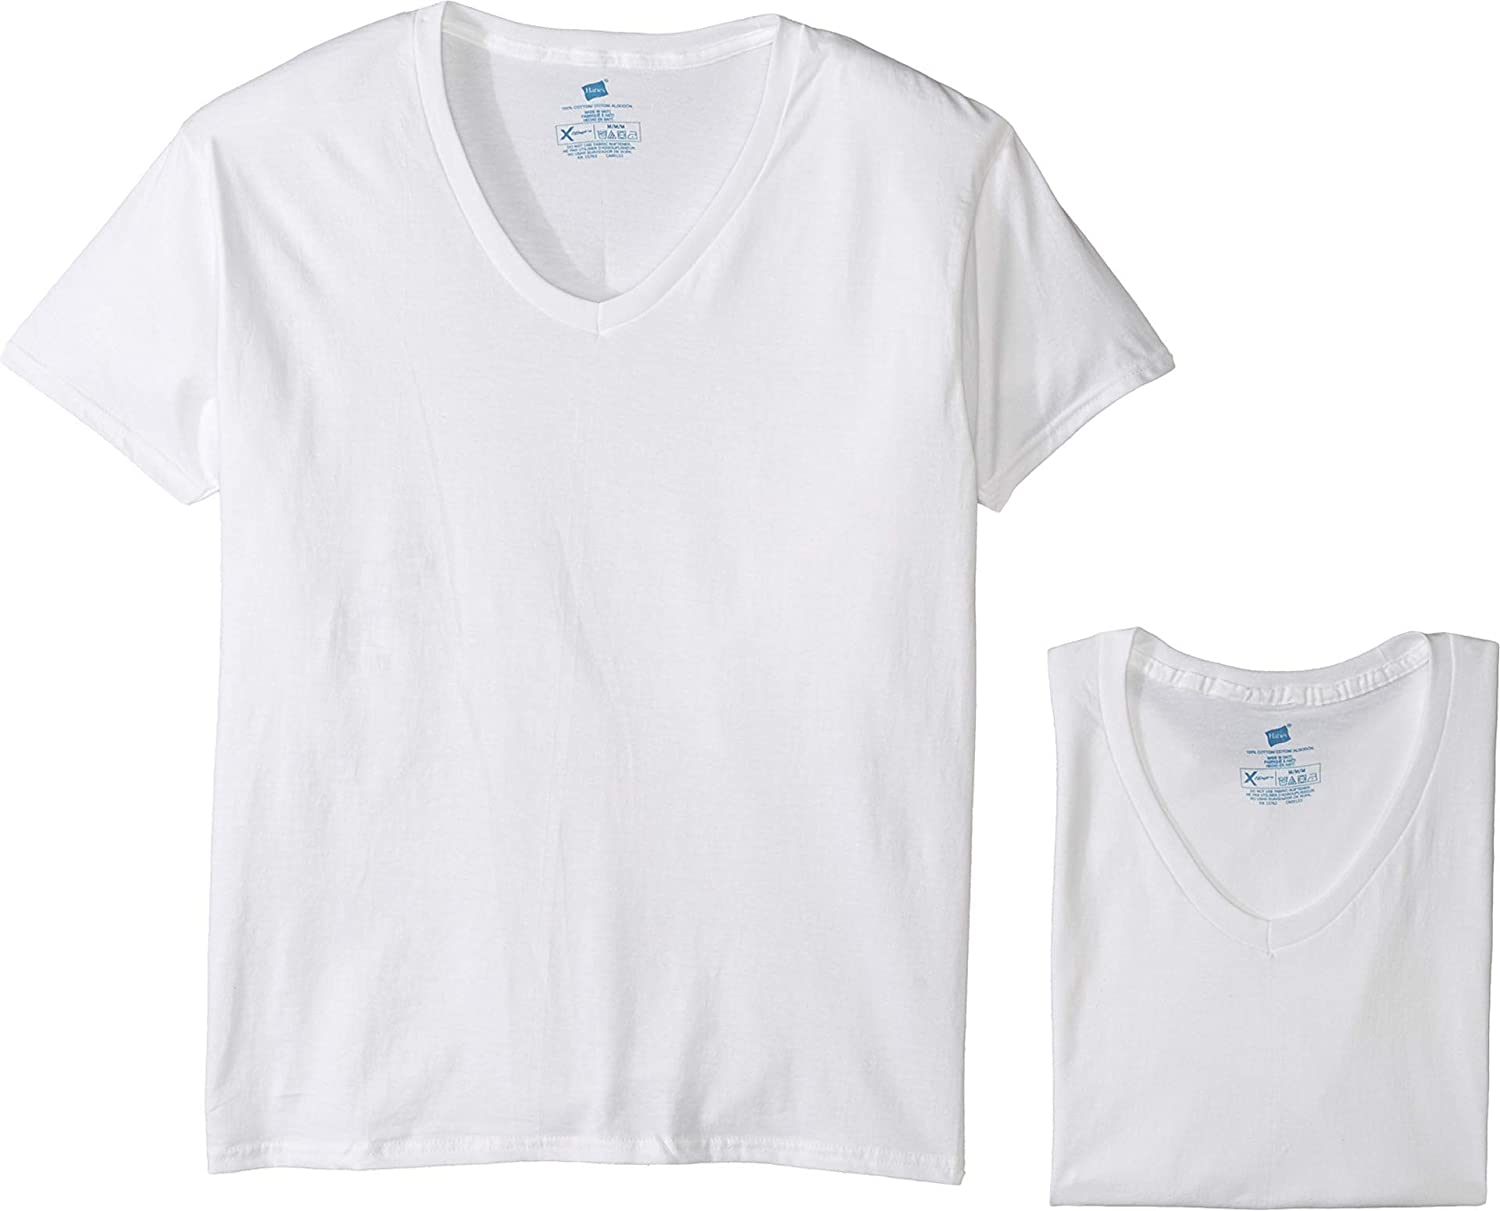 Hanes Men's 4-Pack Platinum X-Temp V-Neck Combed Max 77% OFF New Shipping Free Shipping Cotton